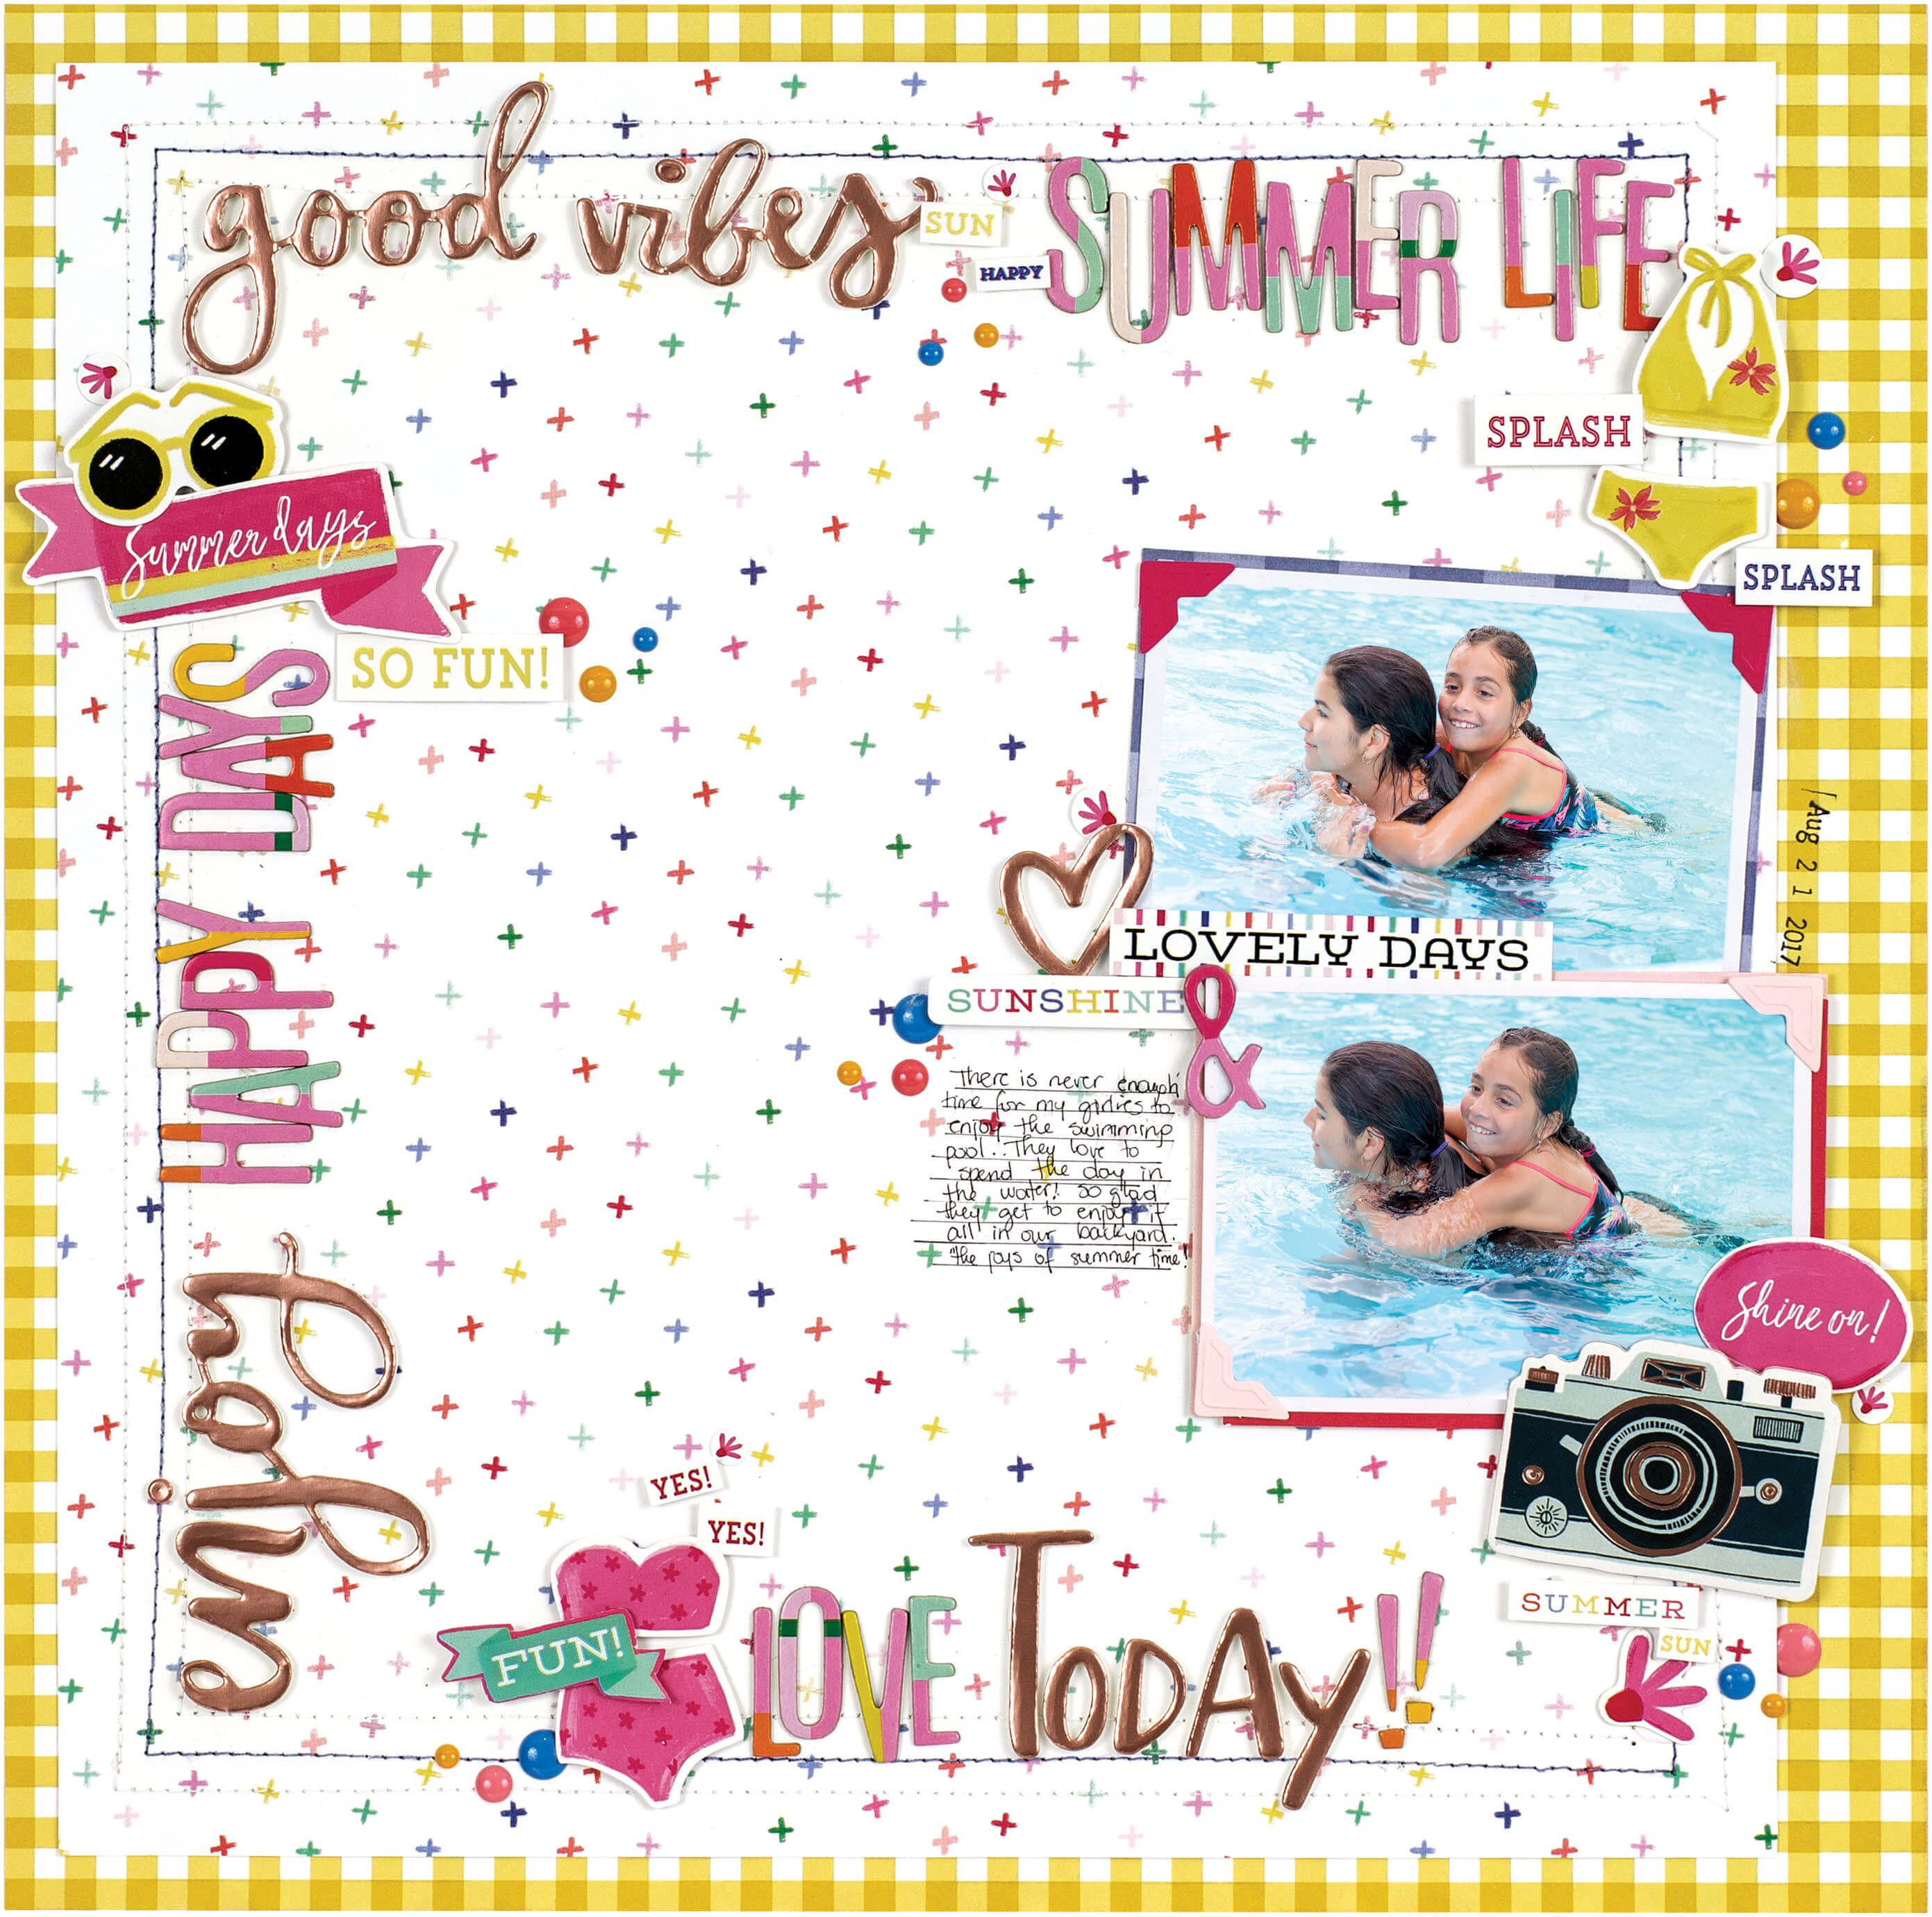 Scrapbook & Cards Today - Summer 2019 - Good Vibes layout by Nathalie DeSousa